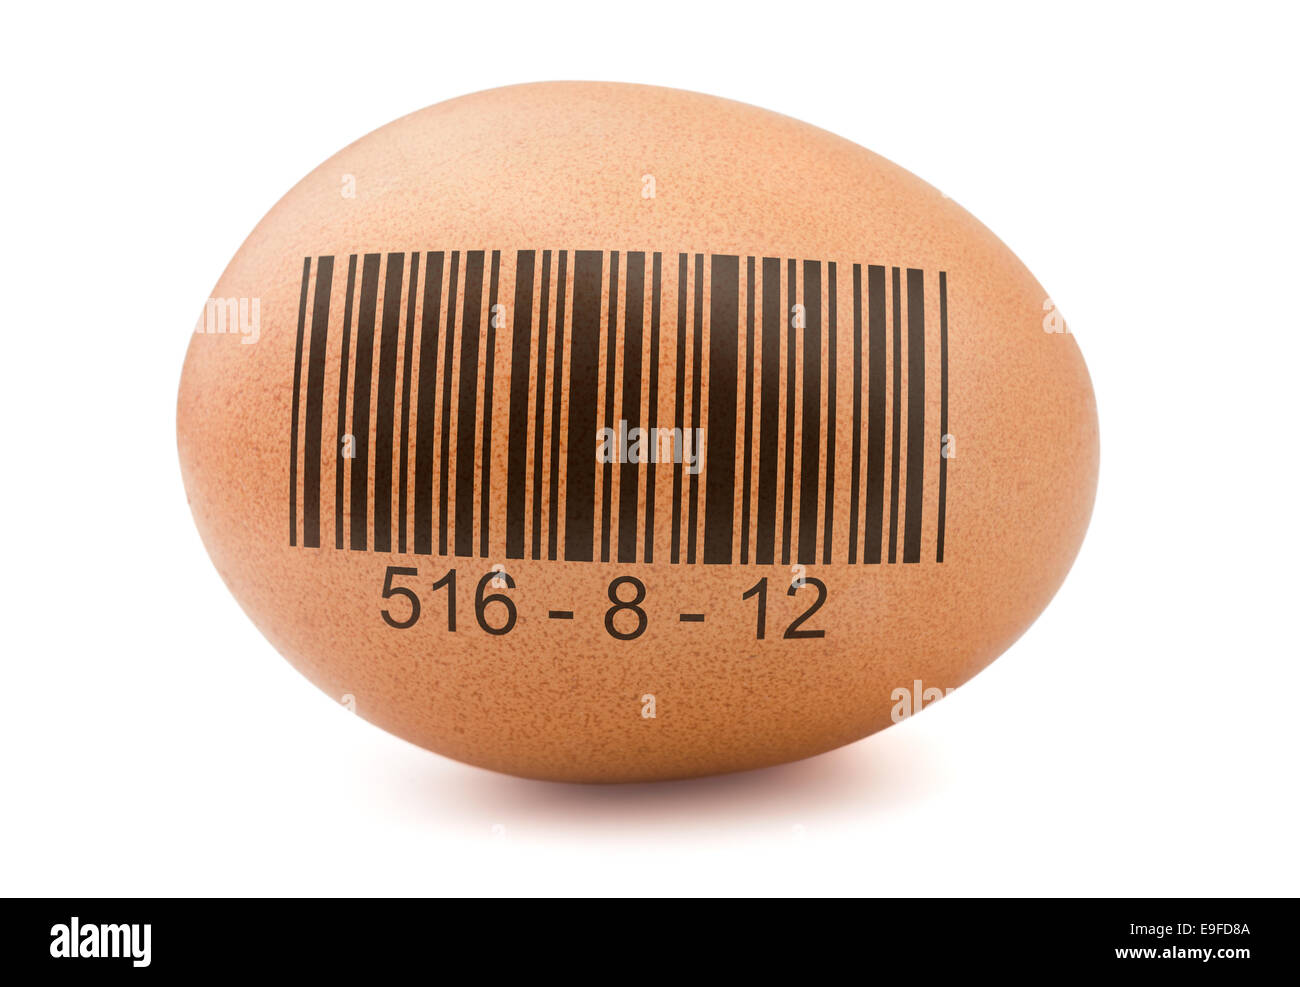 Egg with barcode - Stock Image